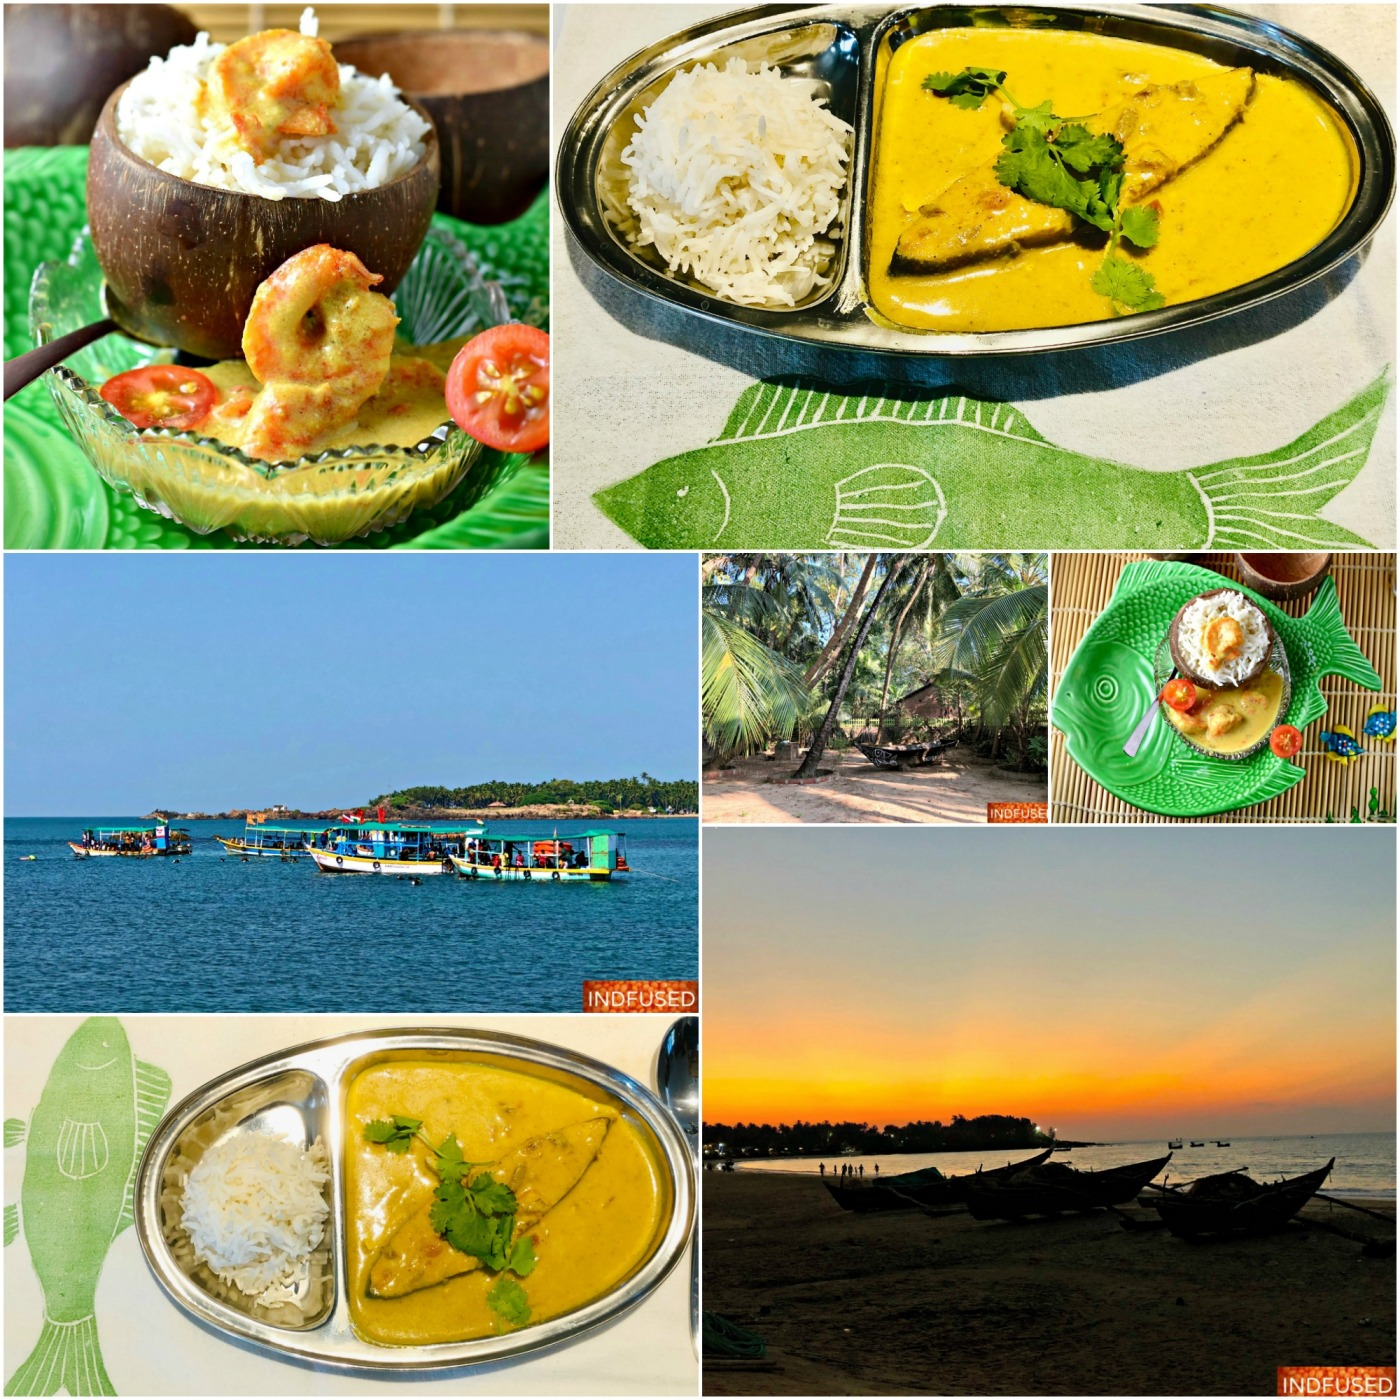 Enjoy the authentic flavors of Goa with us at this fun Cook Along on October 17th!